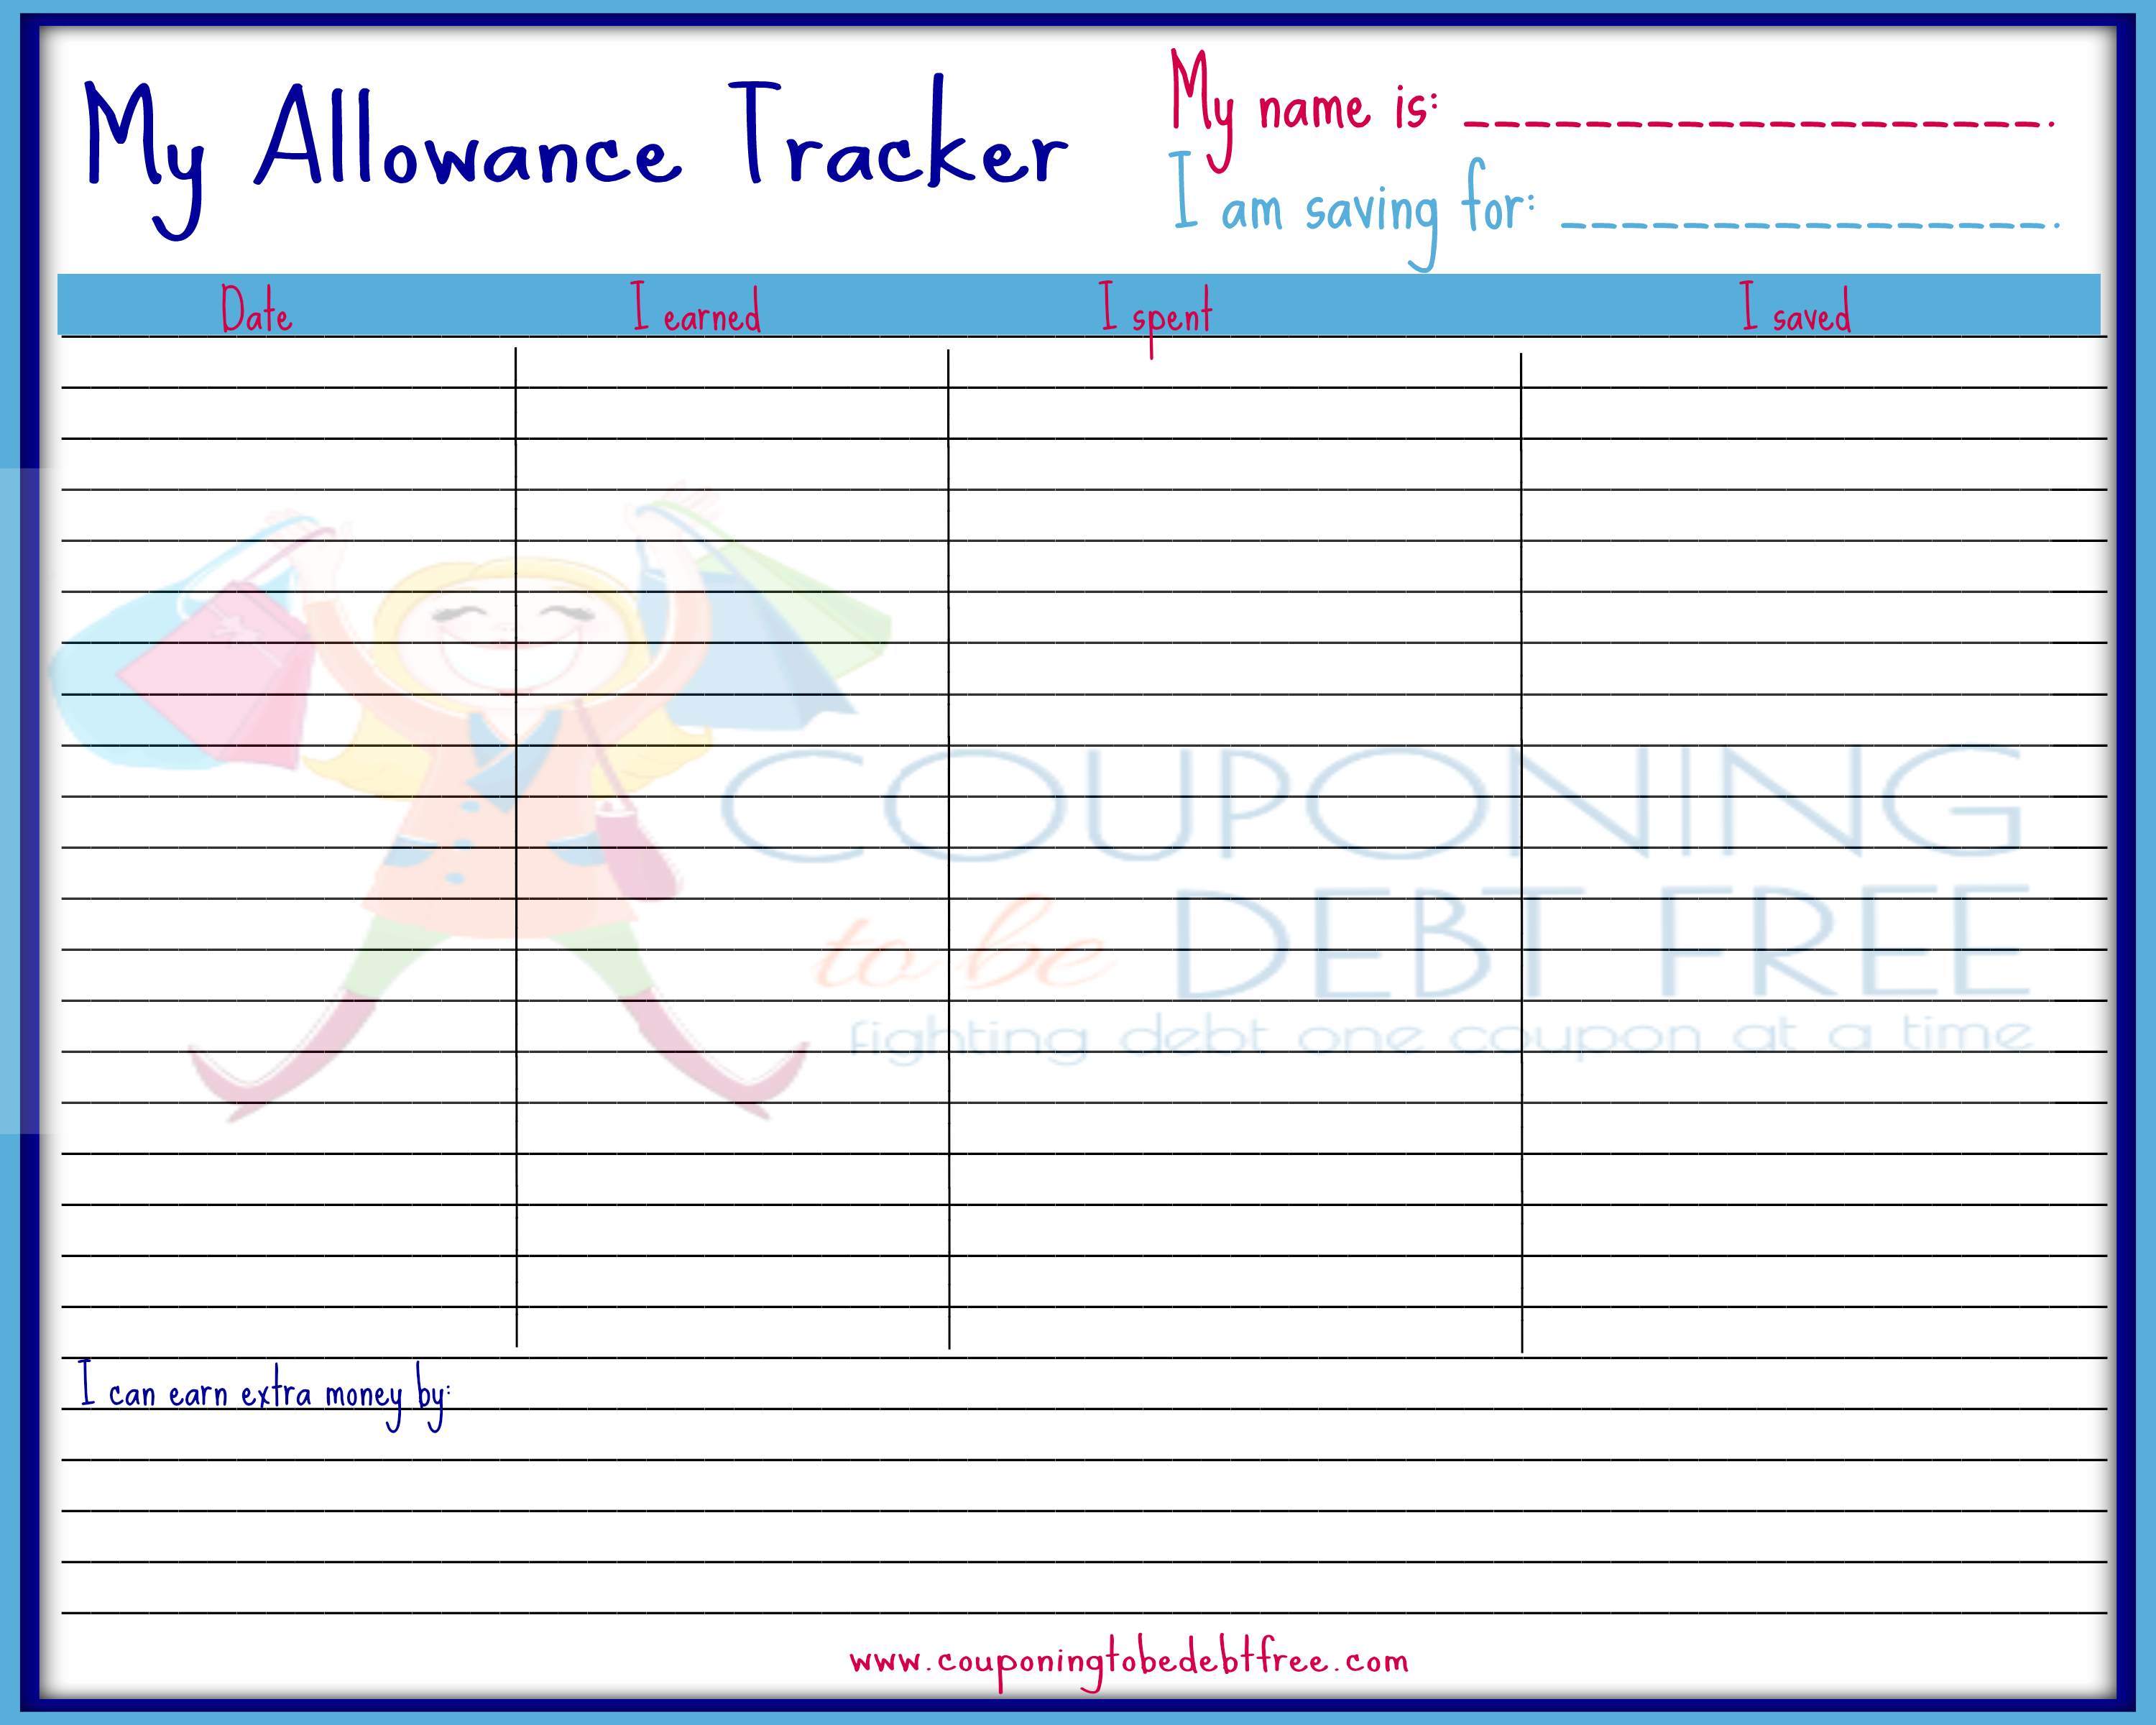 Free Weekly Allowance Tracker Printable Printable